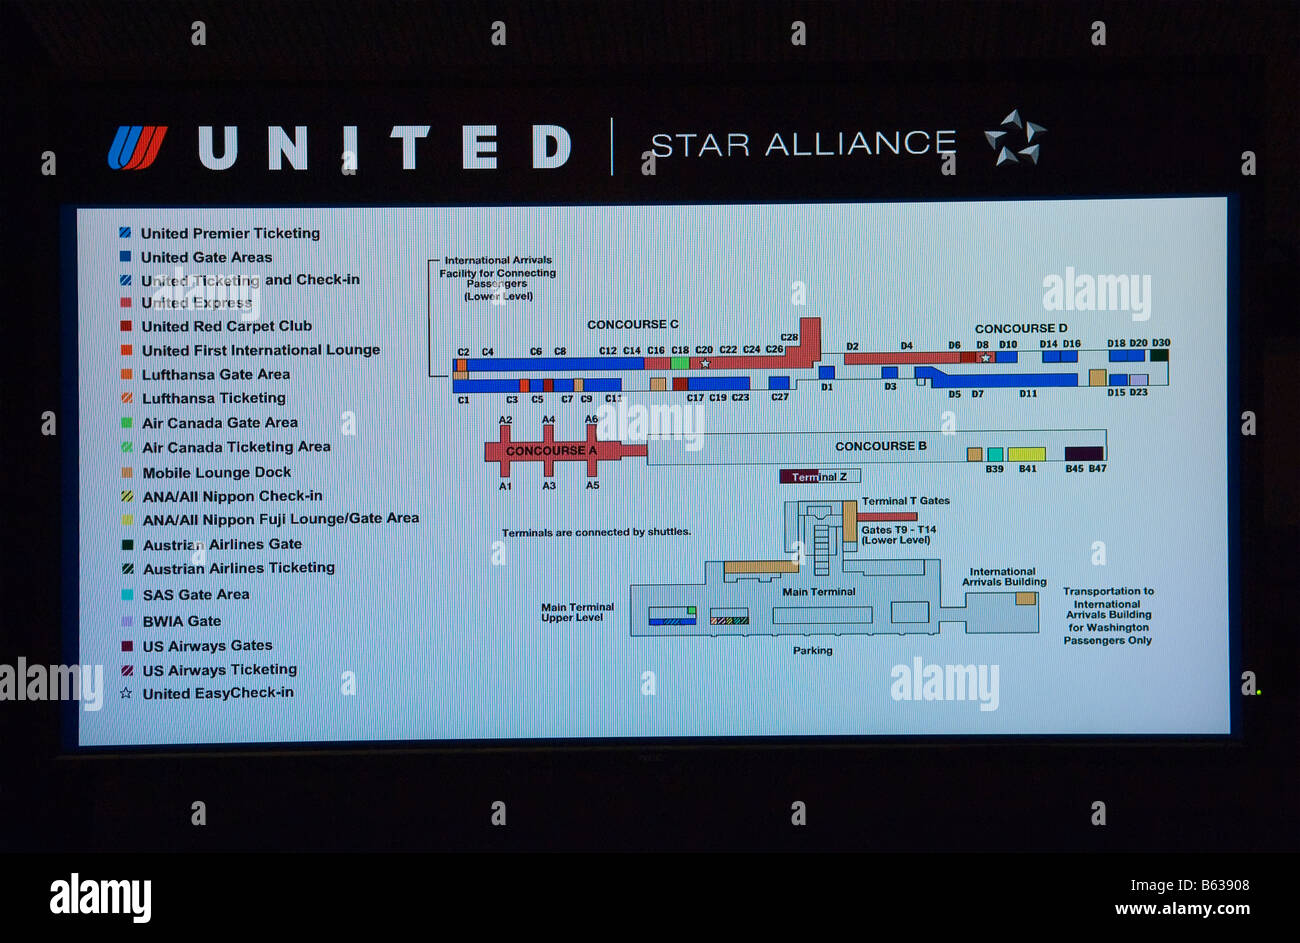 Dulles Airport Terminal Map on